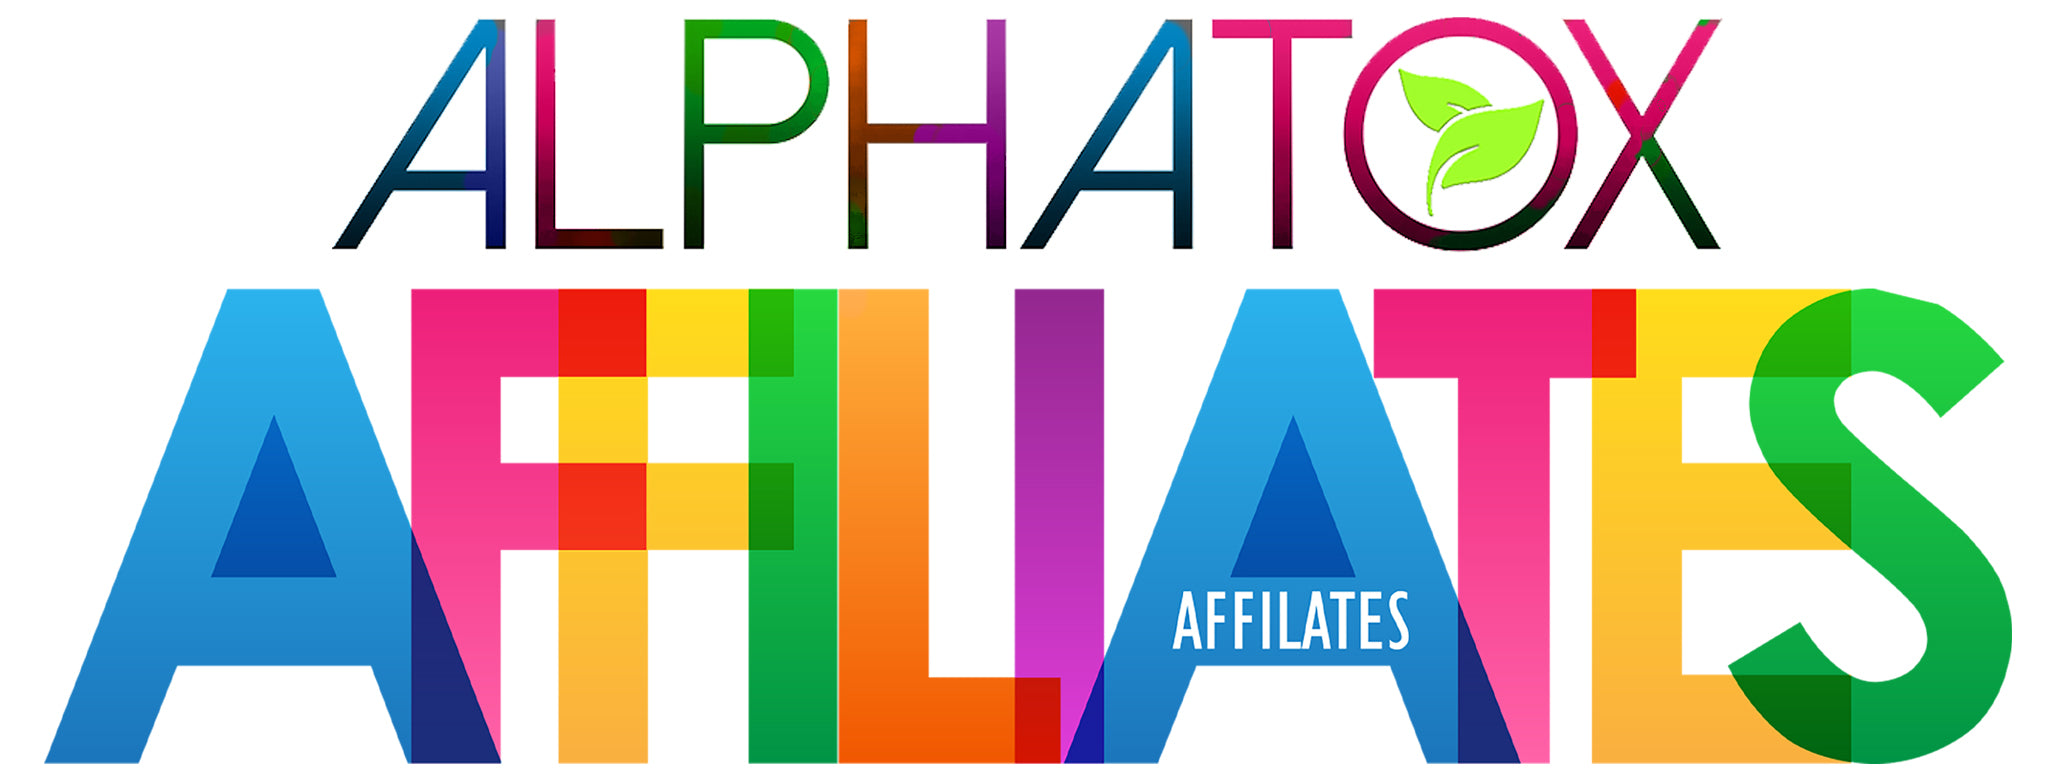 Join Alphatox Ambassador & Affiliate Program To Start Earning Real Cash Daily Everytime A Referral Makes A Purchase!